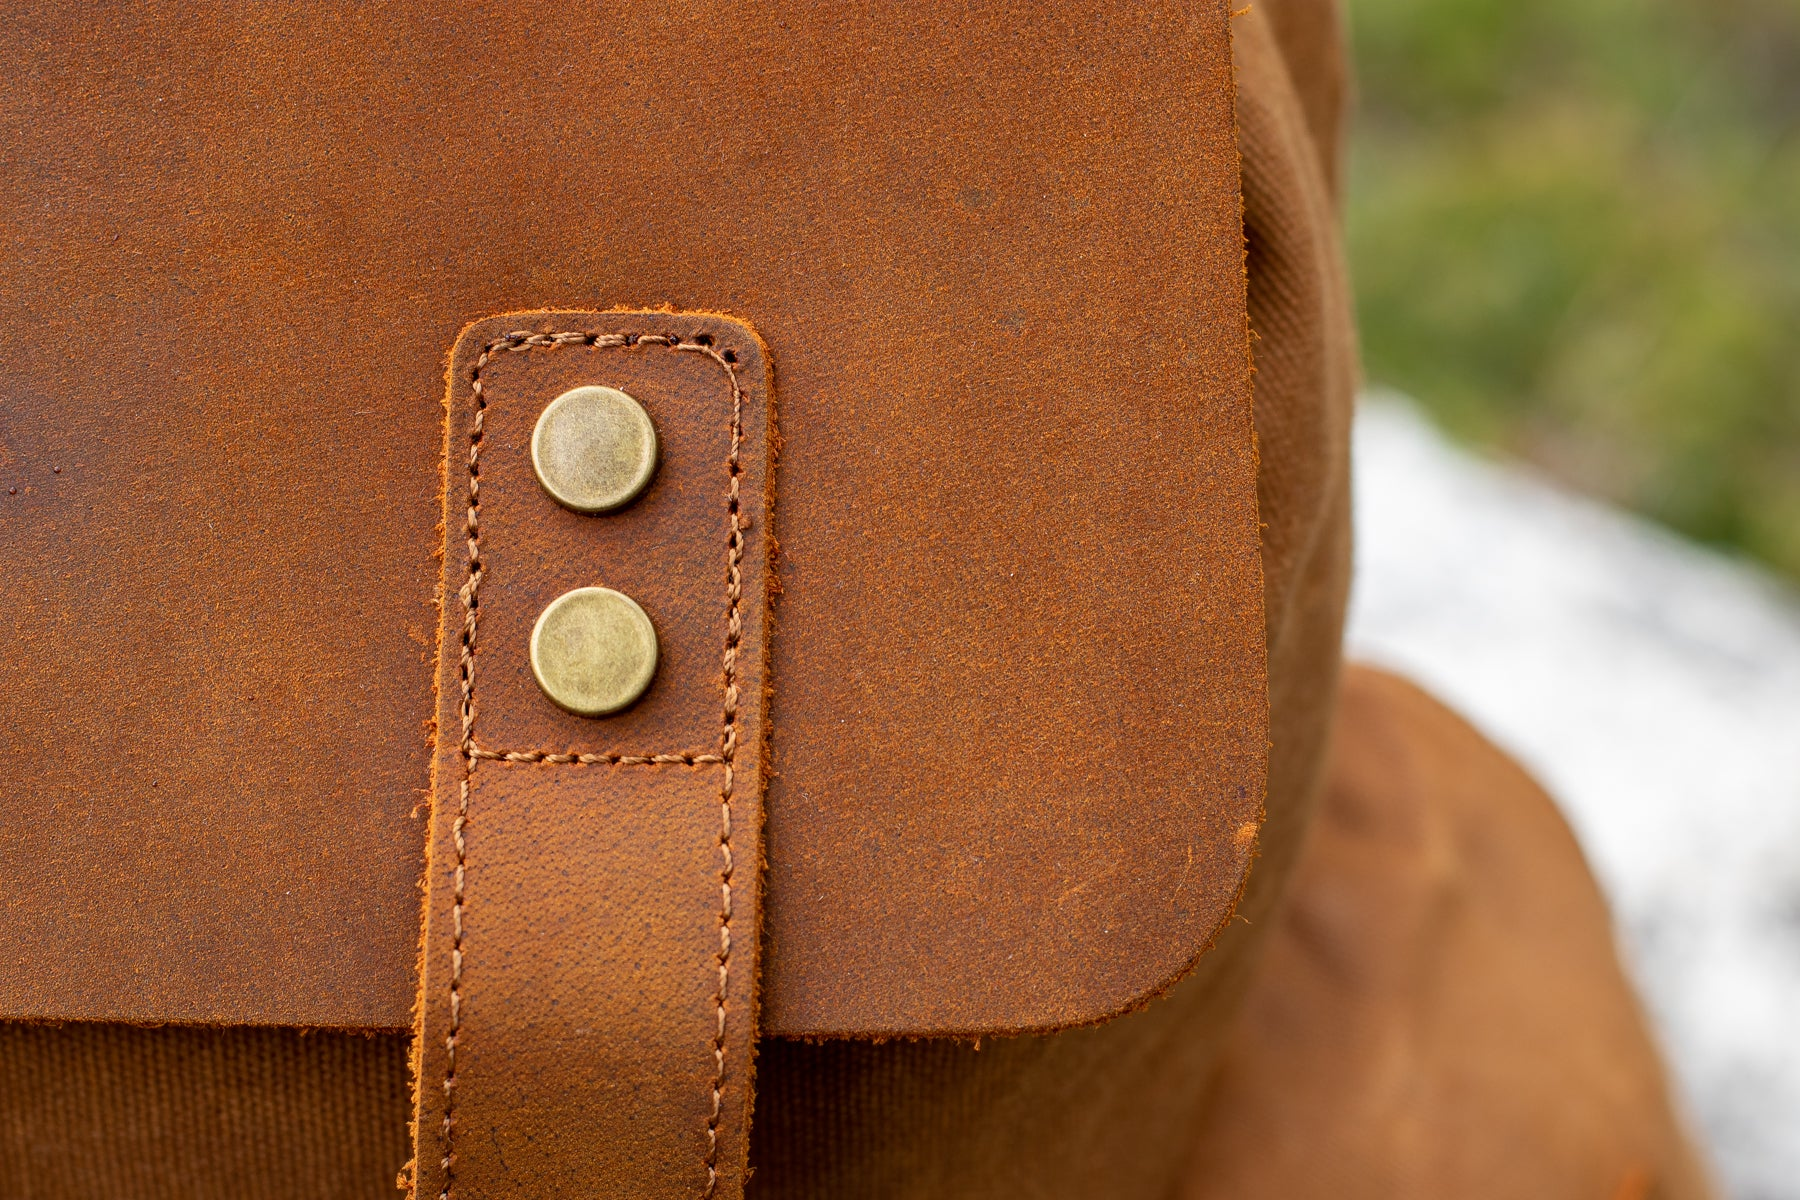 close up view of the gold tone protective rivet on the leather cap of the waxed canvas backpack